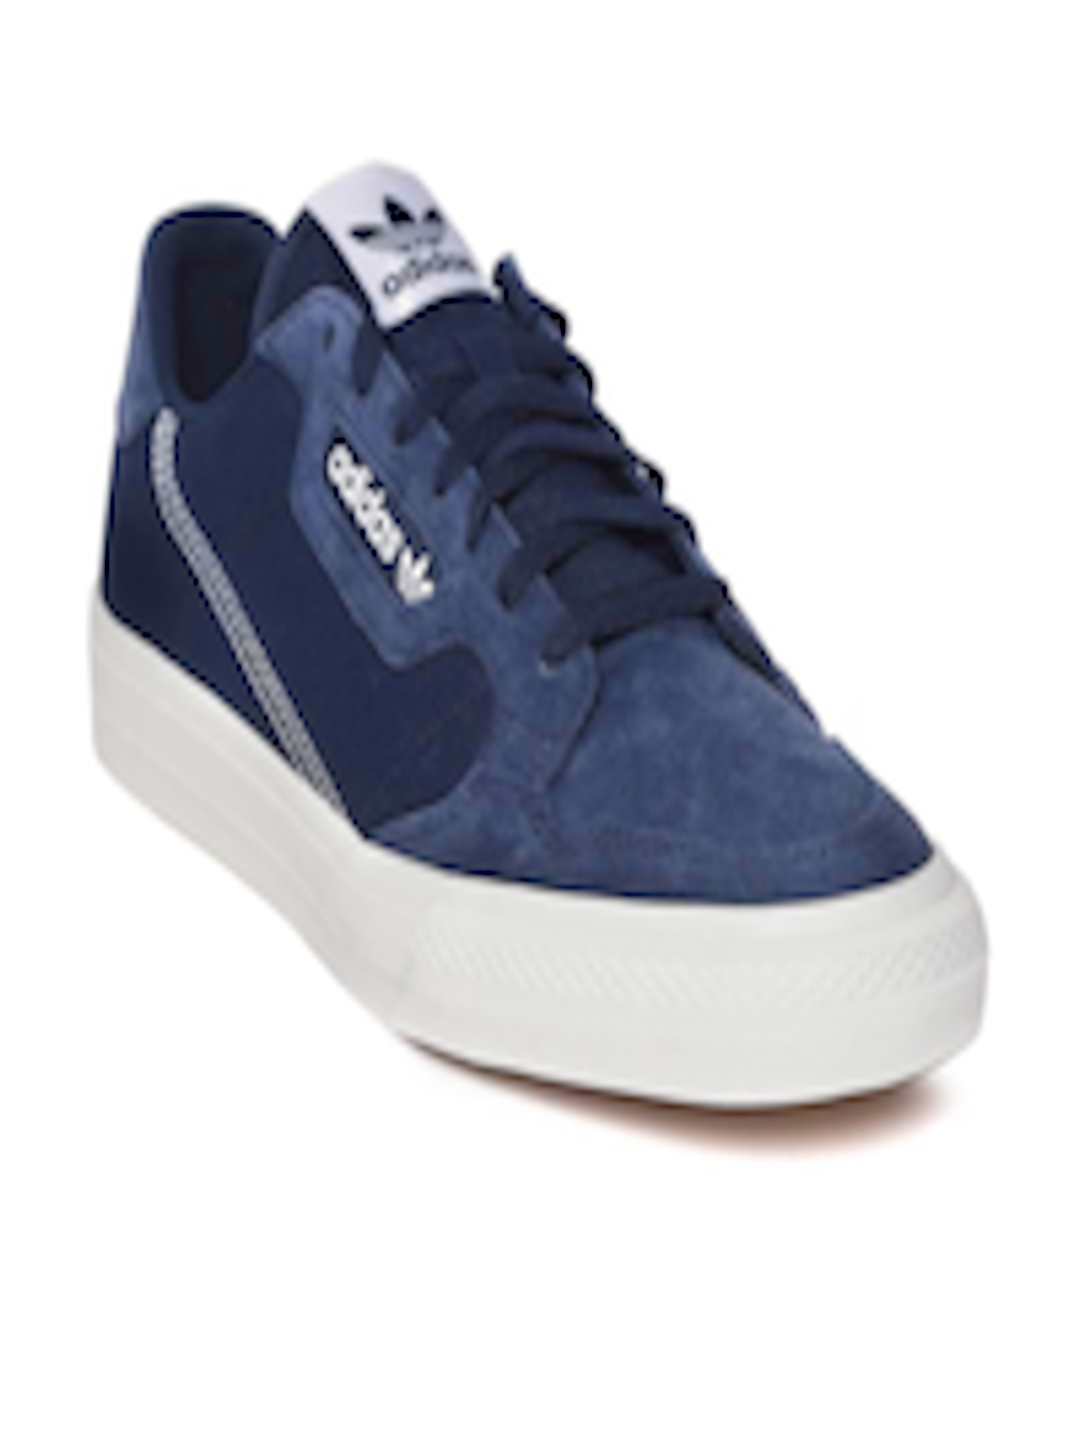 Buy ADIDAS Originals Unisex Navy Continental Vulc Sneakers Footwear for Unisex